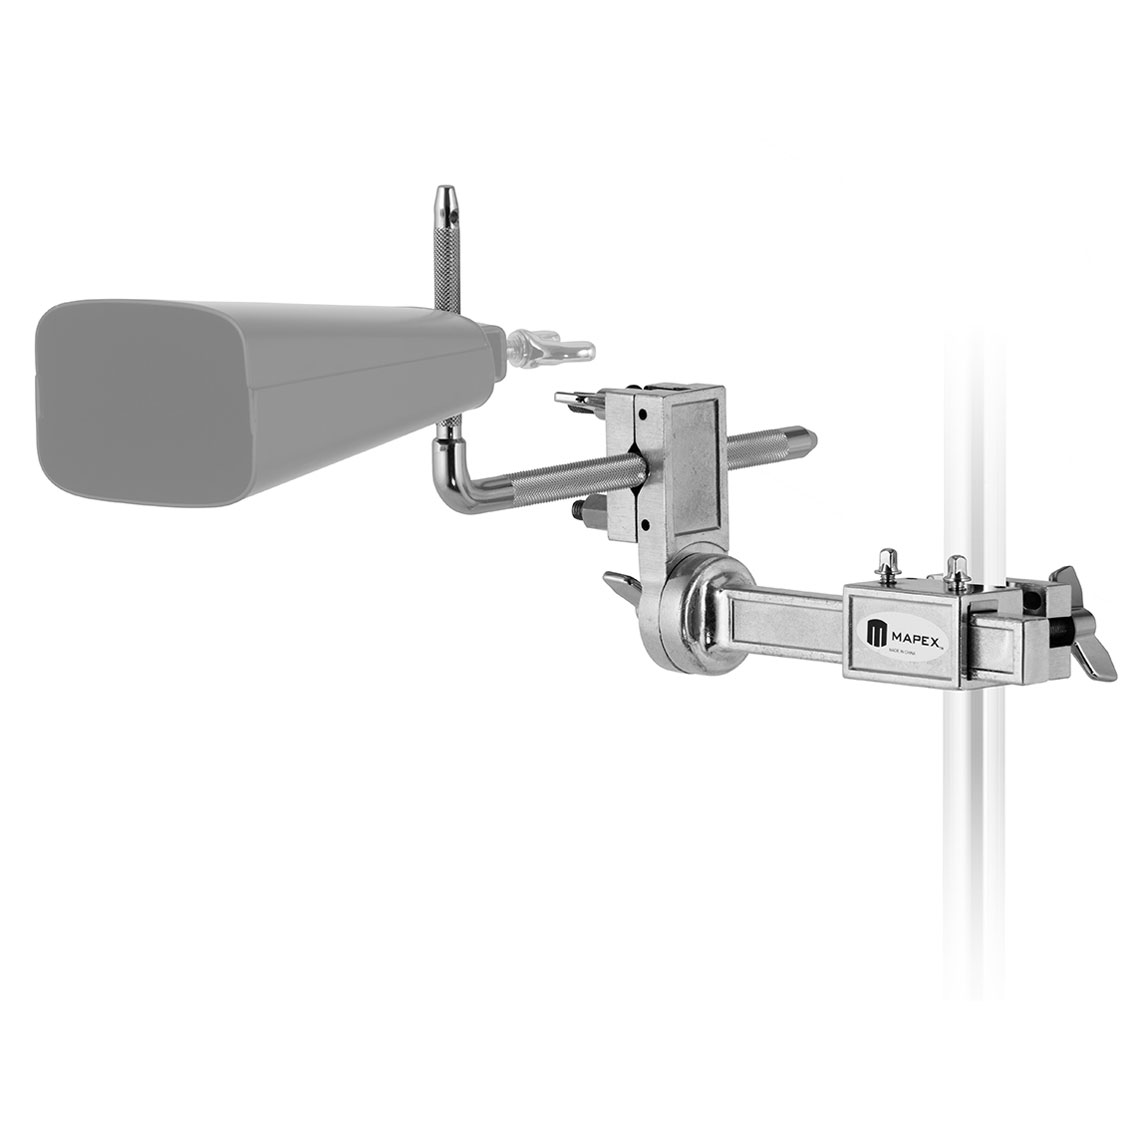 Mapex Cowbell/Accessory Holder for Cymbal Stand